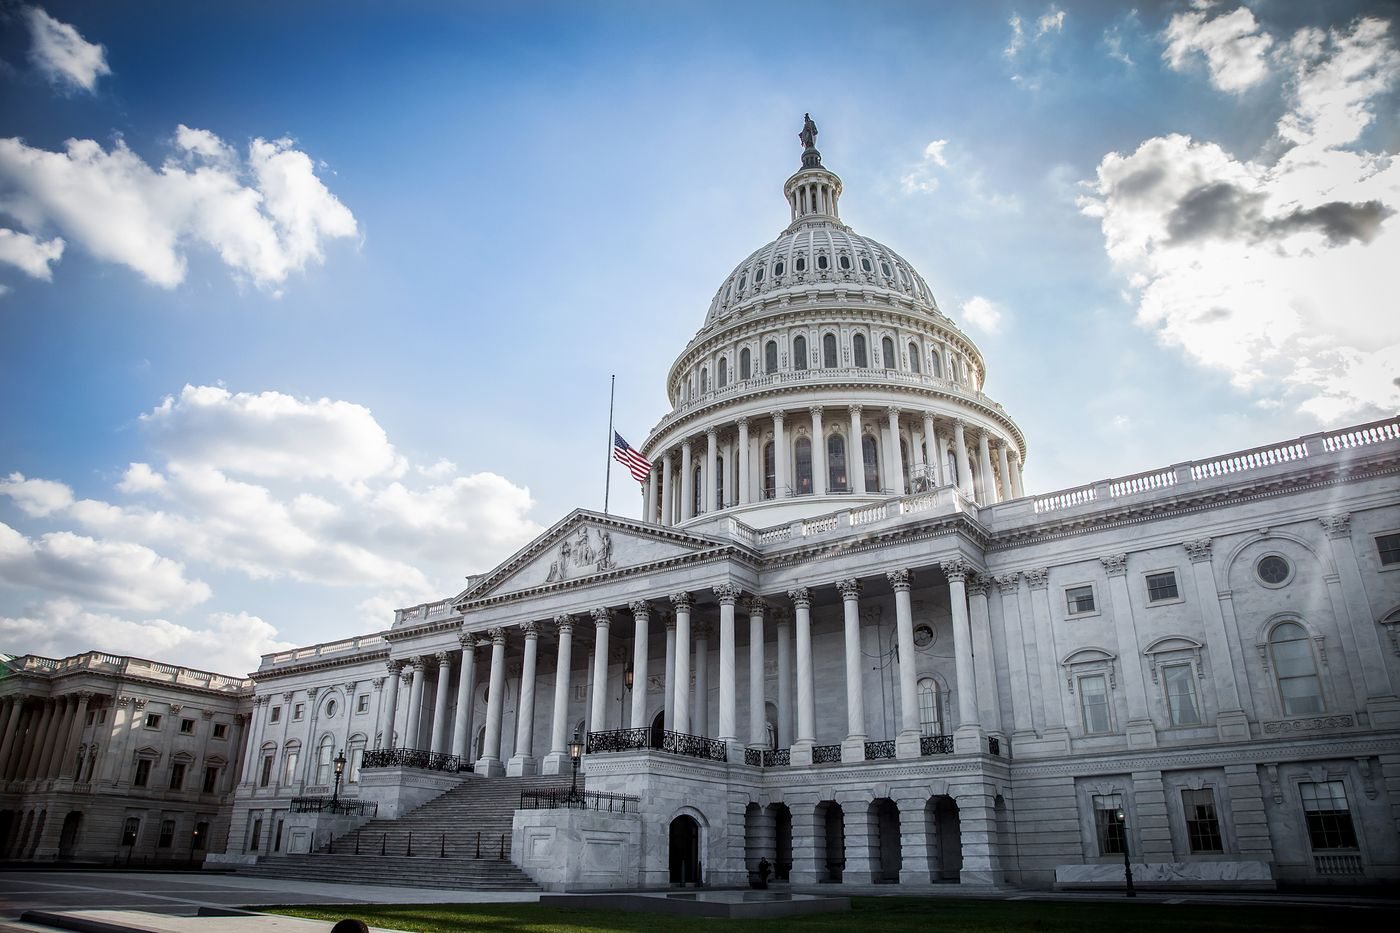 https://tickertapecdn.tdameritrade.com/assets/images/pages/md/Capitol Hill: Post-election policy shift